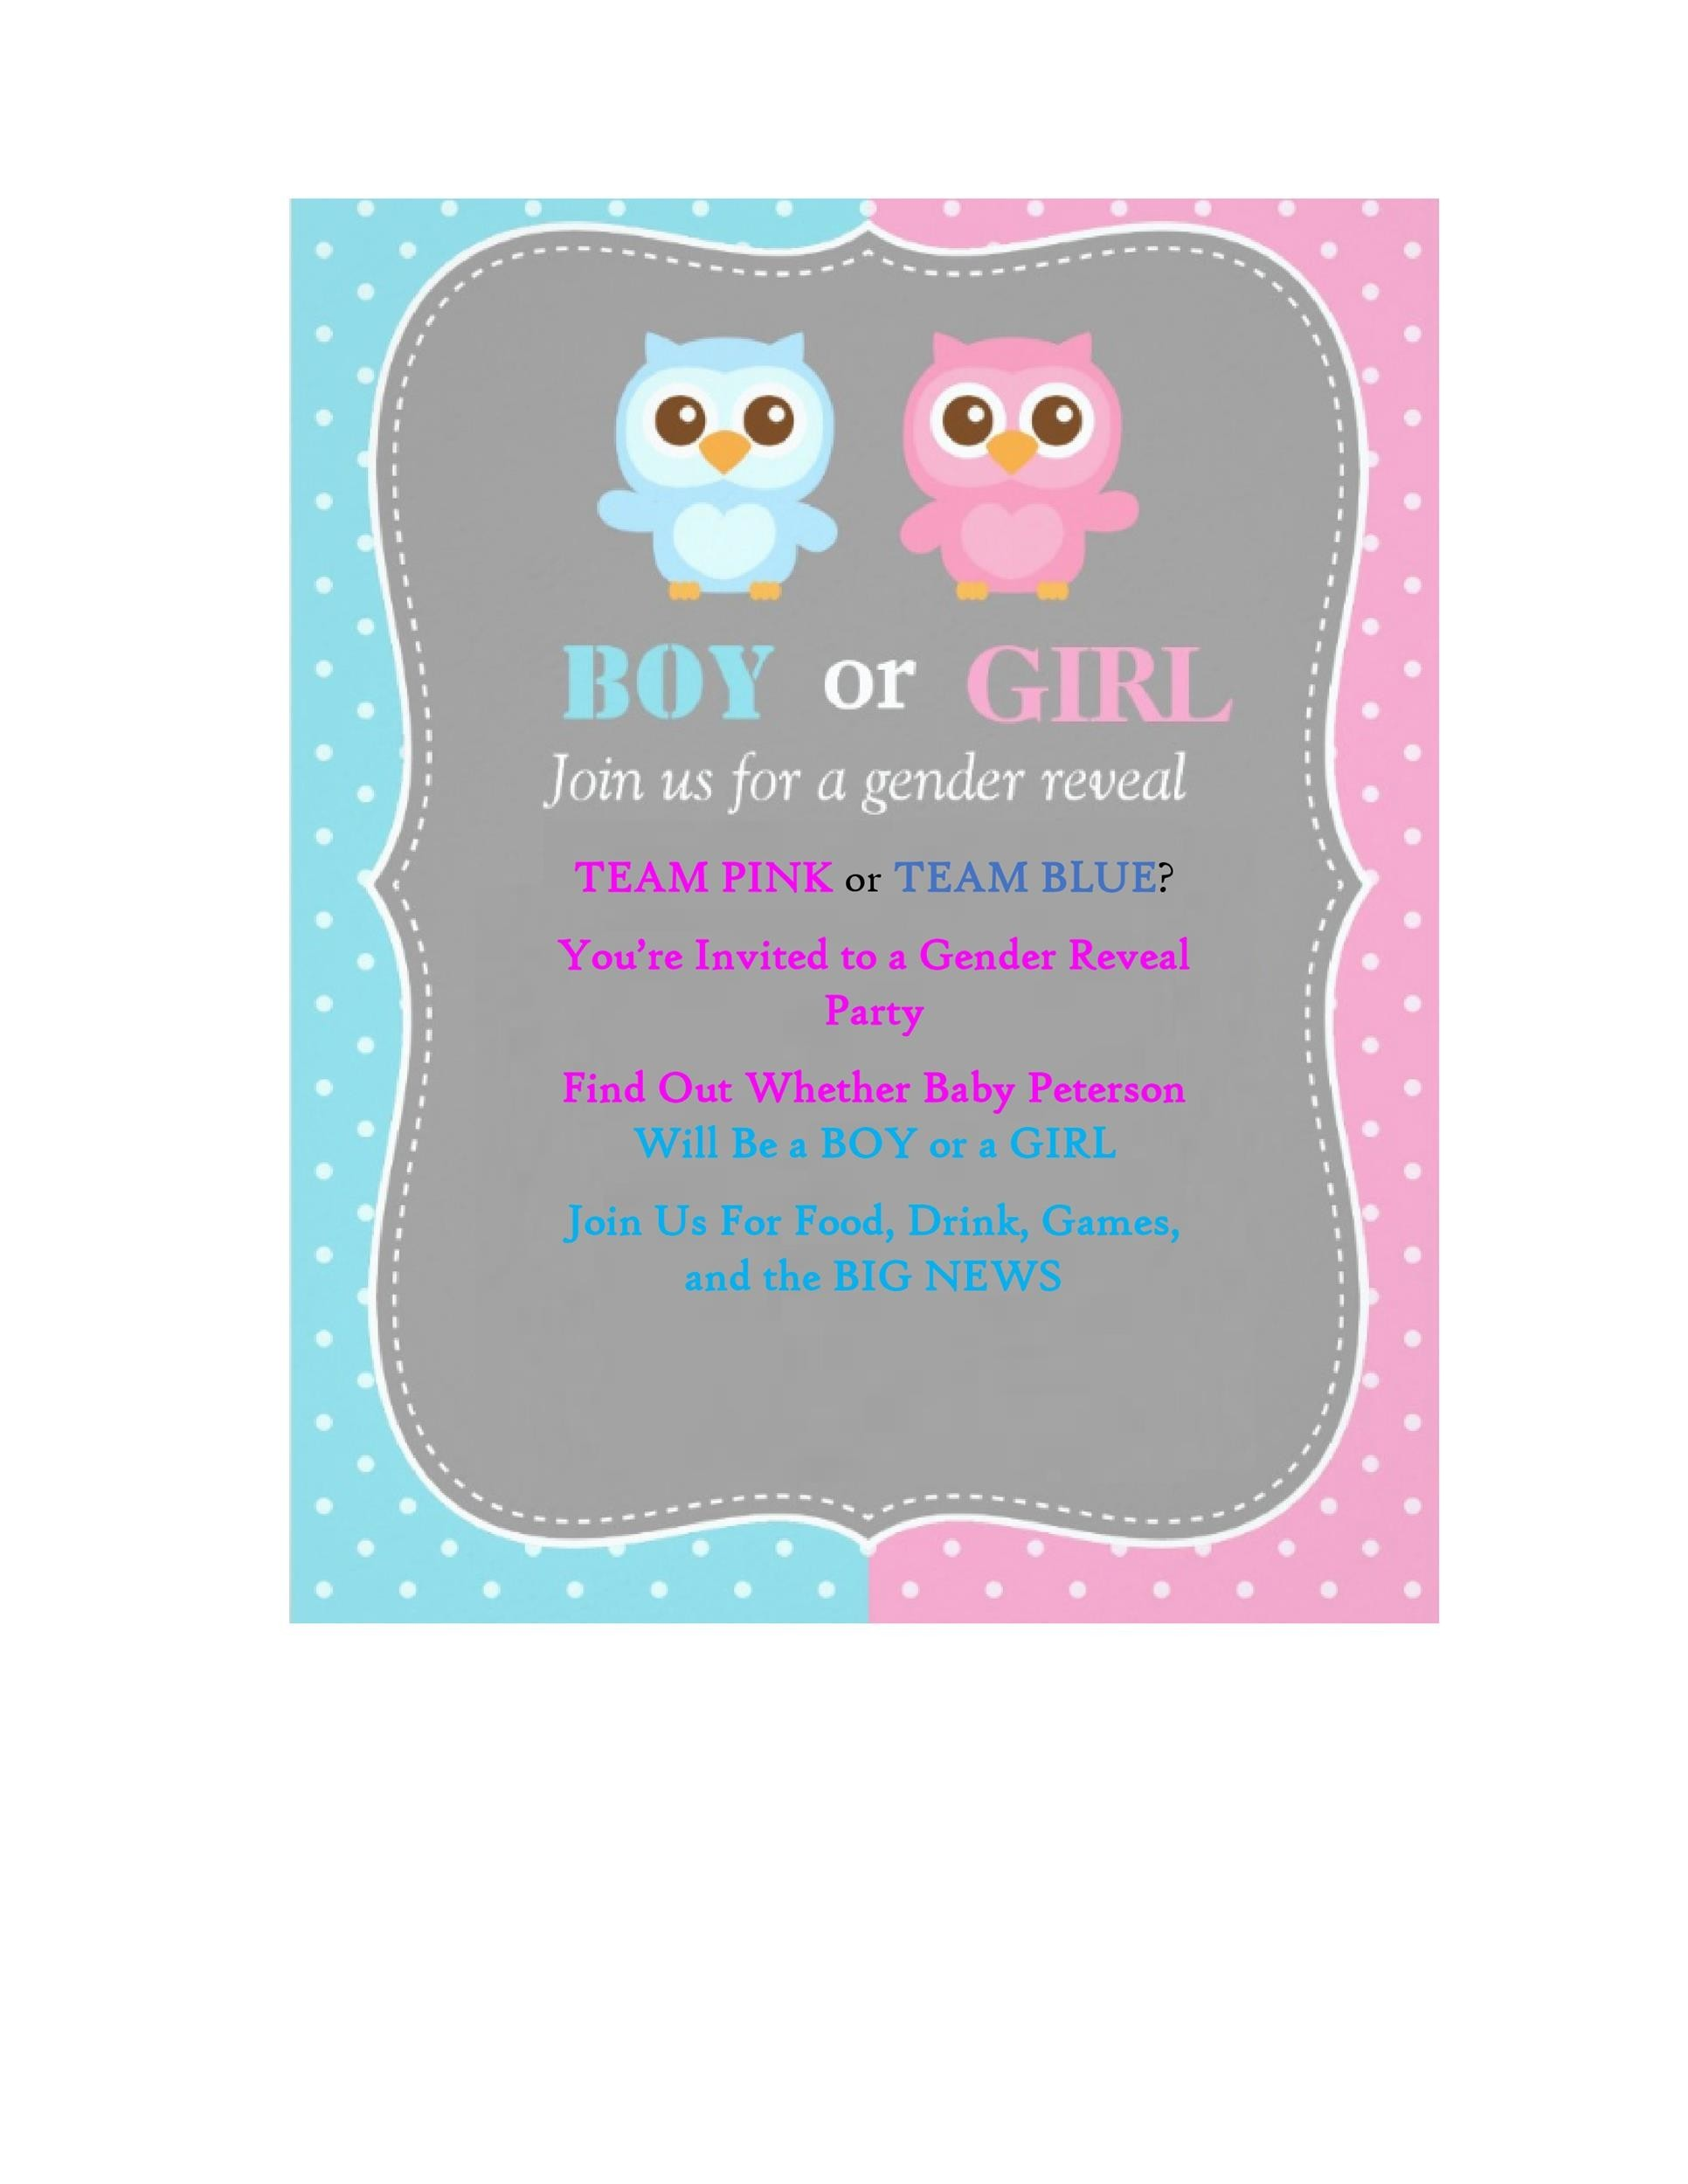 17 Free Gender Reveal Invitation Templates